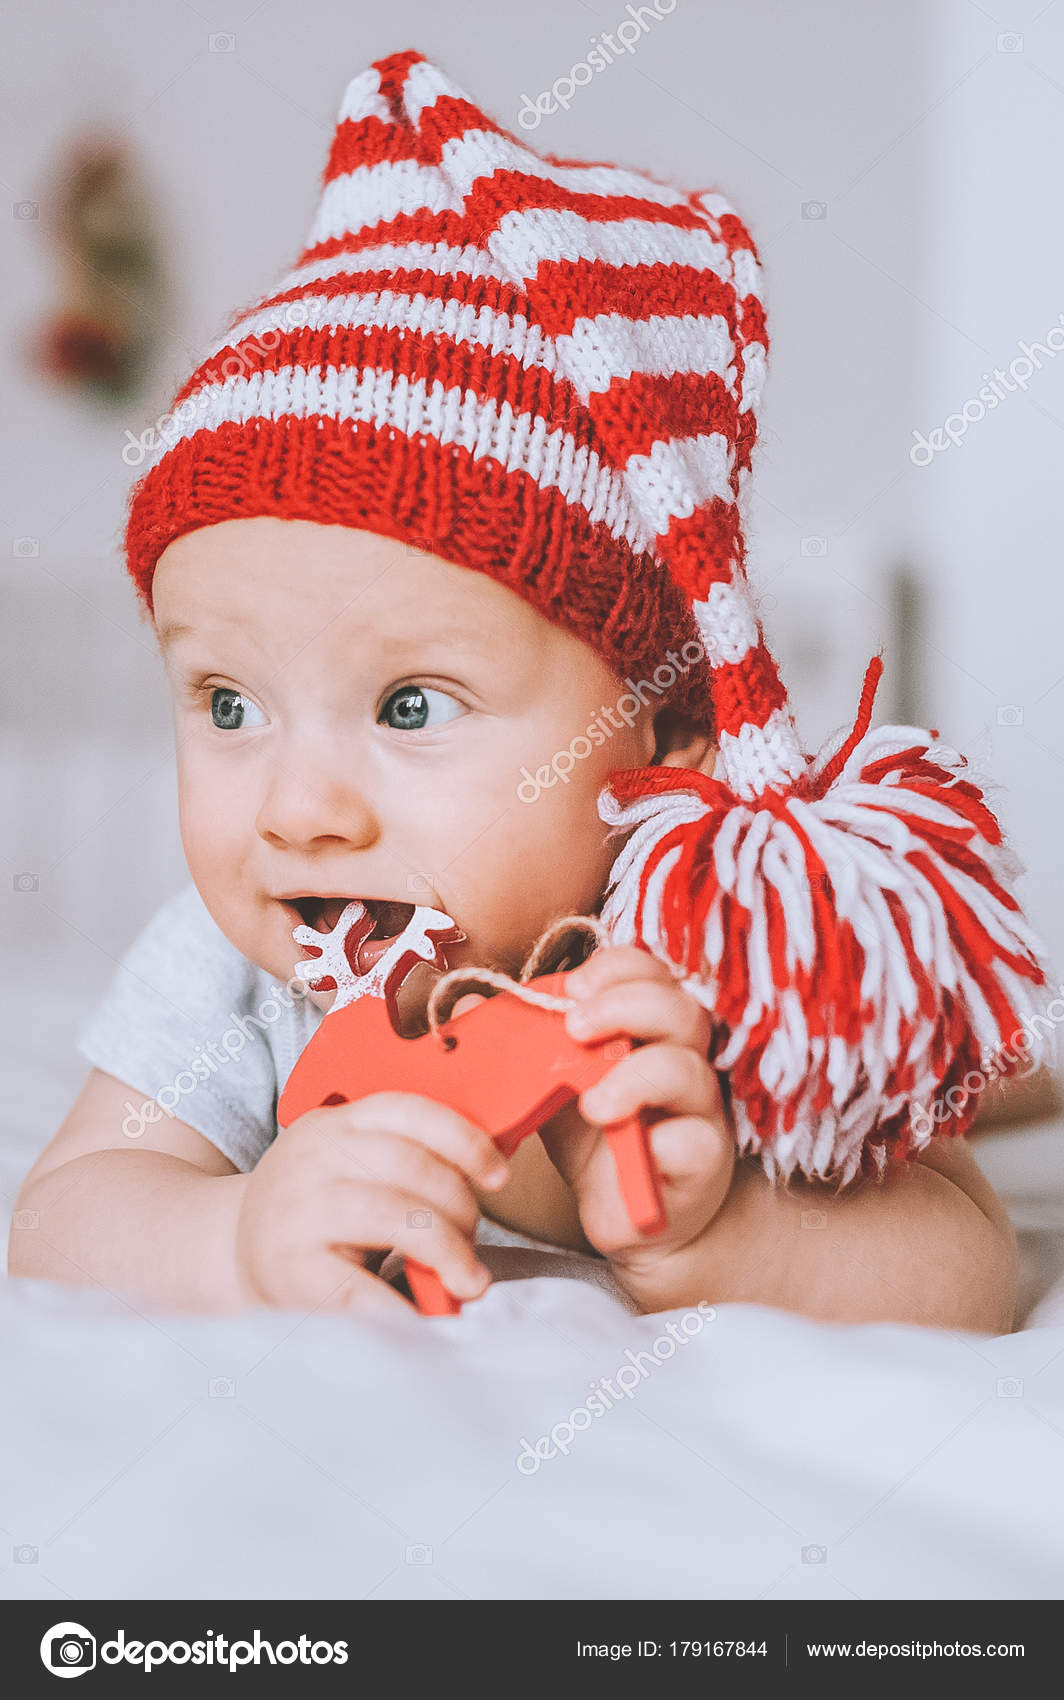 b264d8c8acd Close Portrait Infant Child Red White Striped Hat Pompom Playing — Stock  Photo